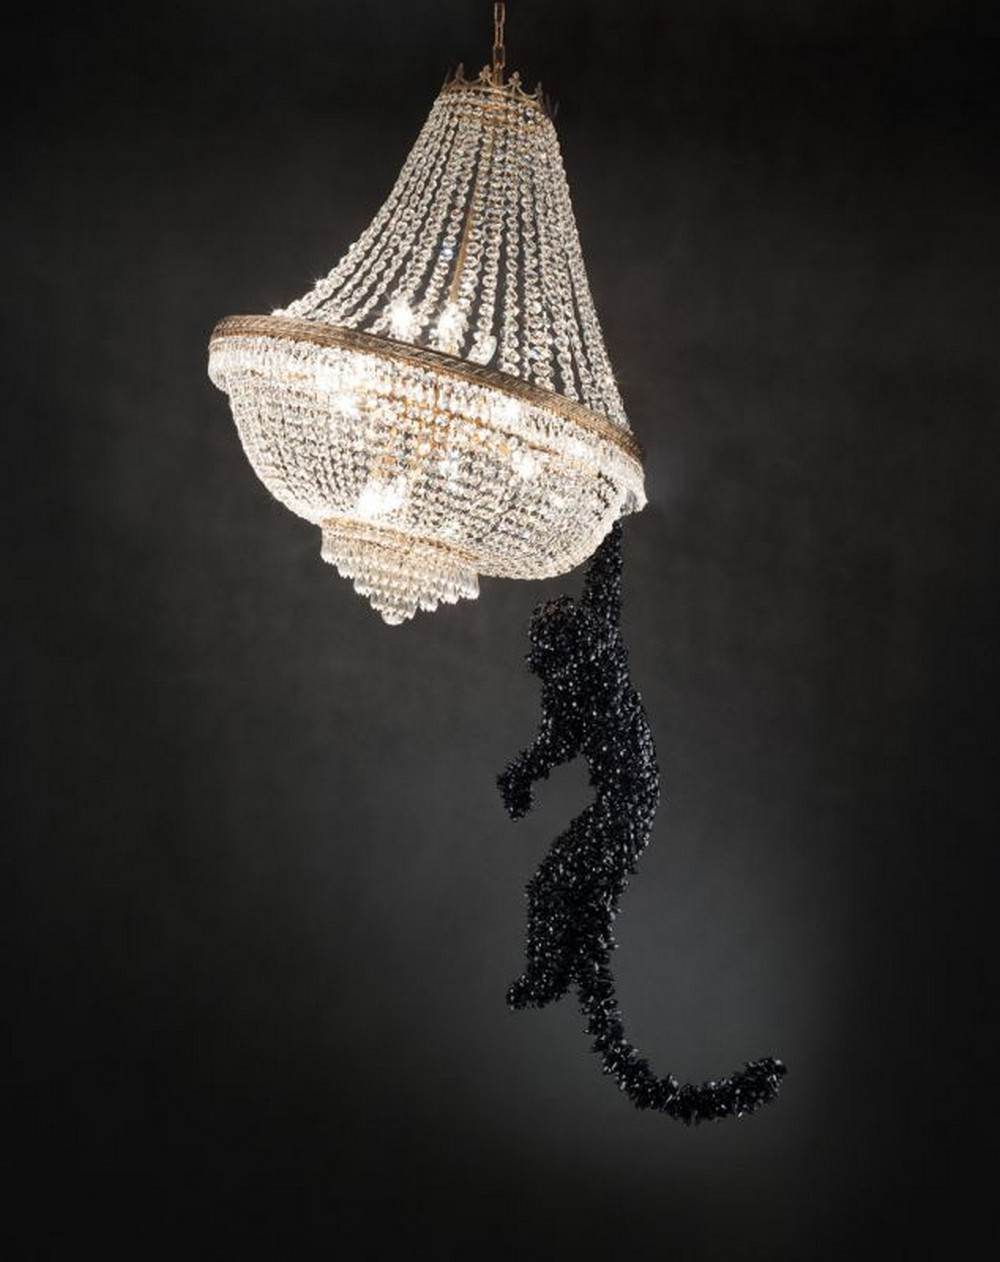 italian craftsmanship Let's have a look at the Most Exquisite Italian Craftsmanship Surprising Contemporary Art and Design Barford Jungle VIP Chandelier